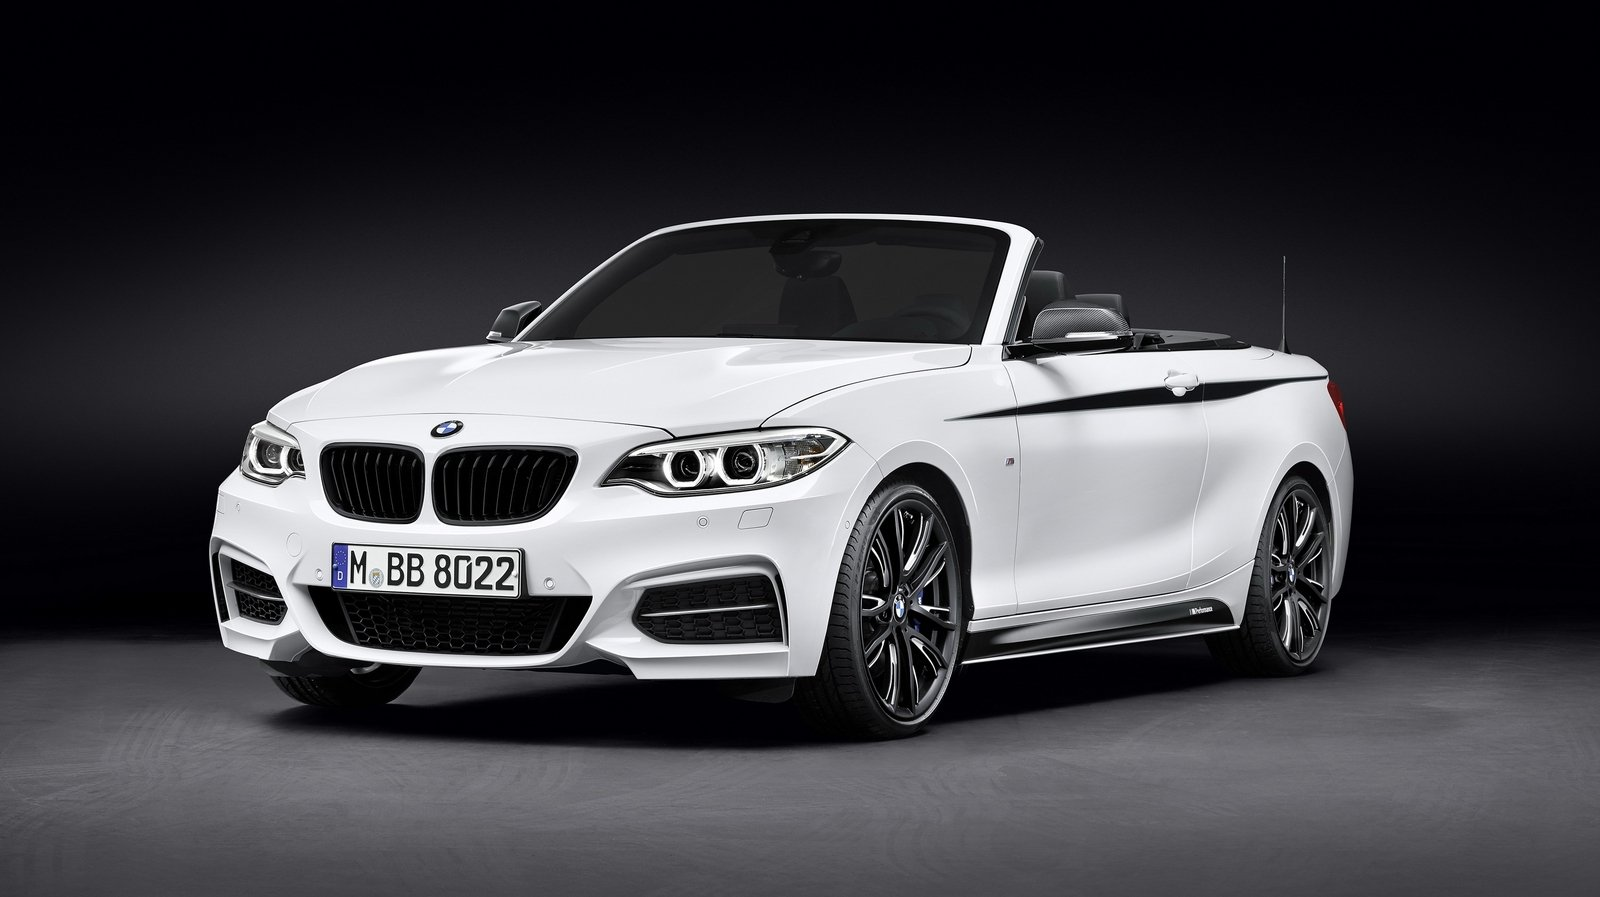 2015 bmw 220d cabrio with m performance parts picture 611287 car review top speed. Black Bedroom Furniture Sets. Home Design Ideas